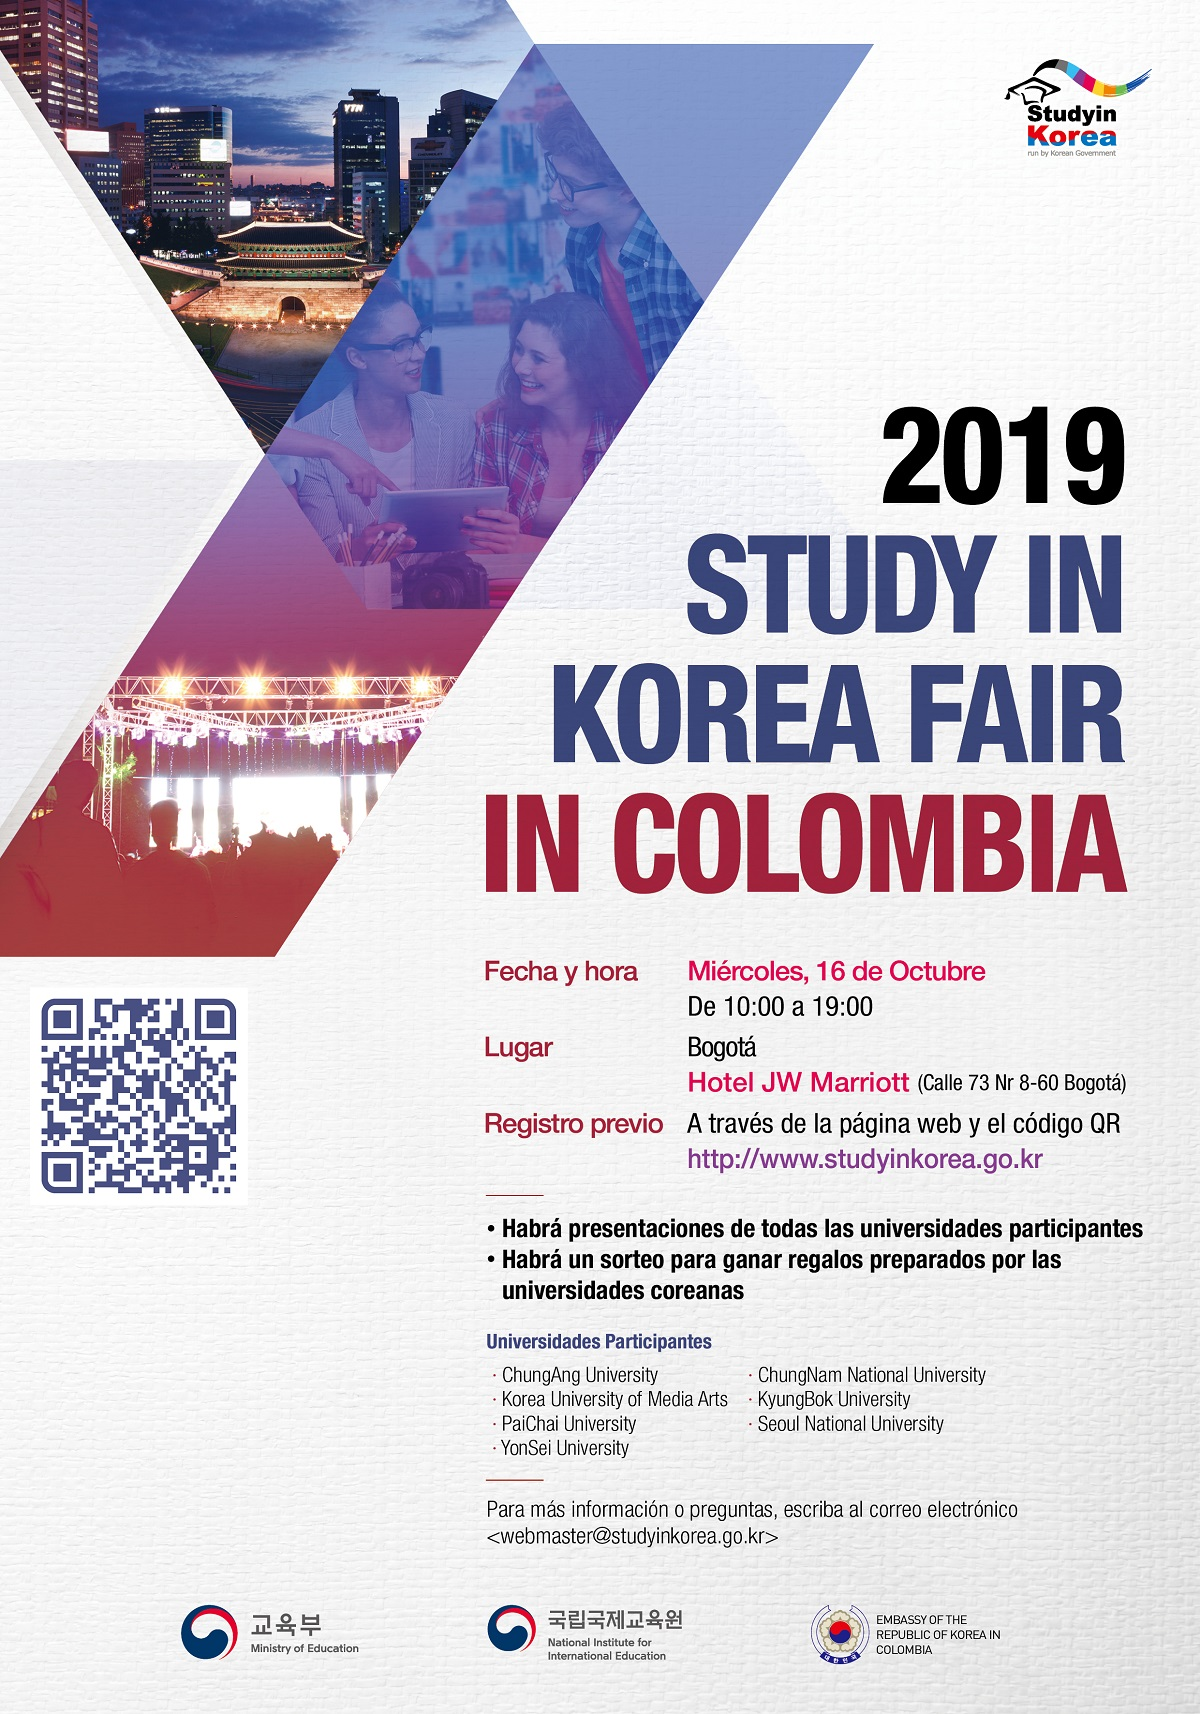 2019 STUDY IN KOREA FAIR IN COLOMBIA 소개 사진